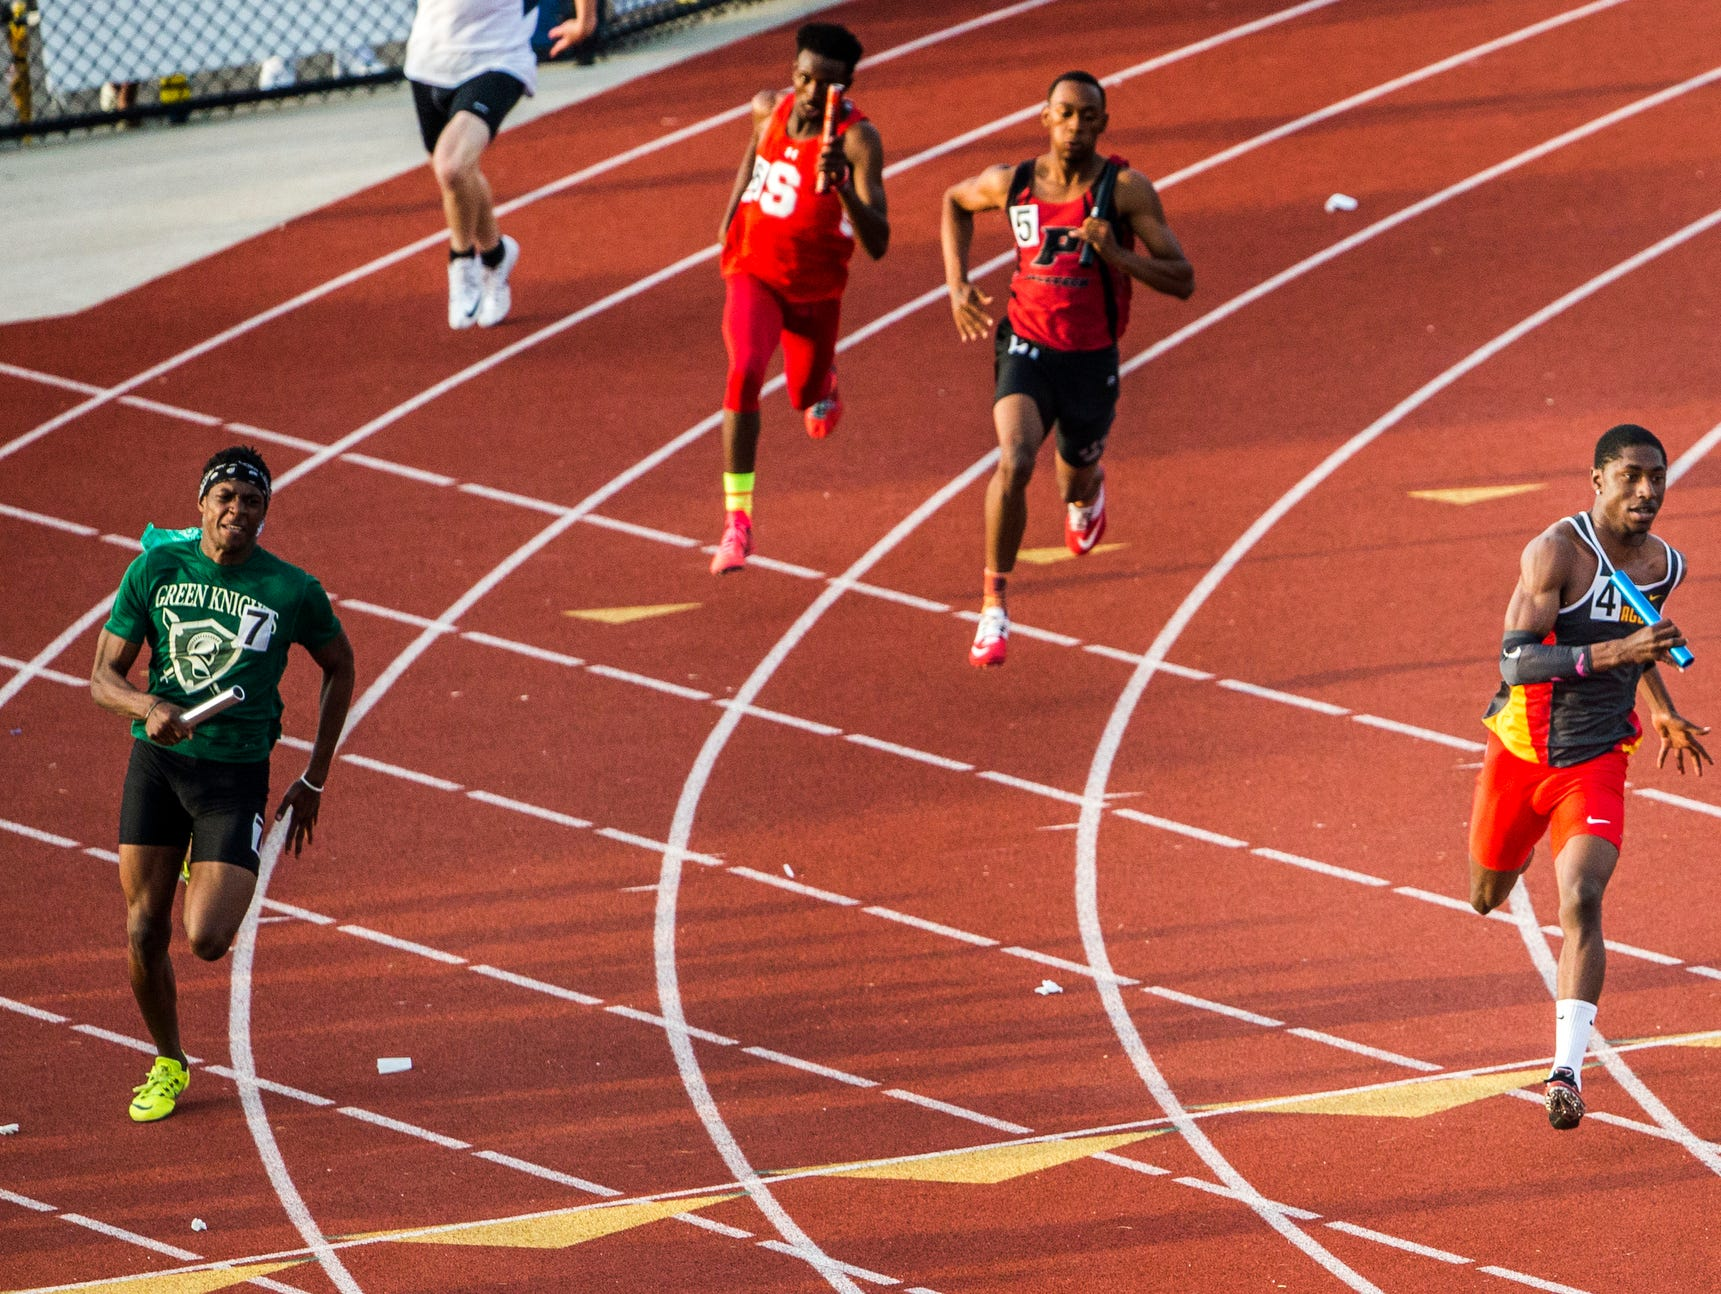 Glasgow's Ja'saan Cunningham (No. 4) anchors his team to a win in the Boys 4x200 Meter Relay event at the Meet of Champions at Dover High School on Wednesday evening.